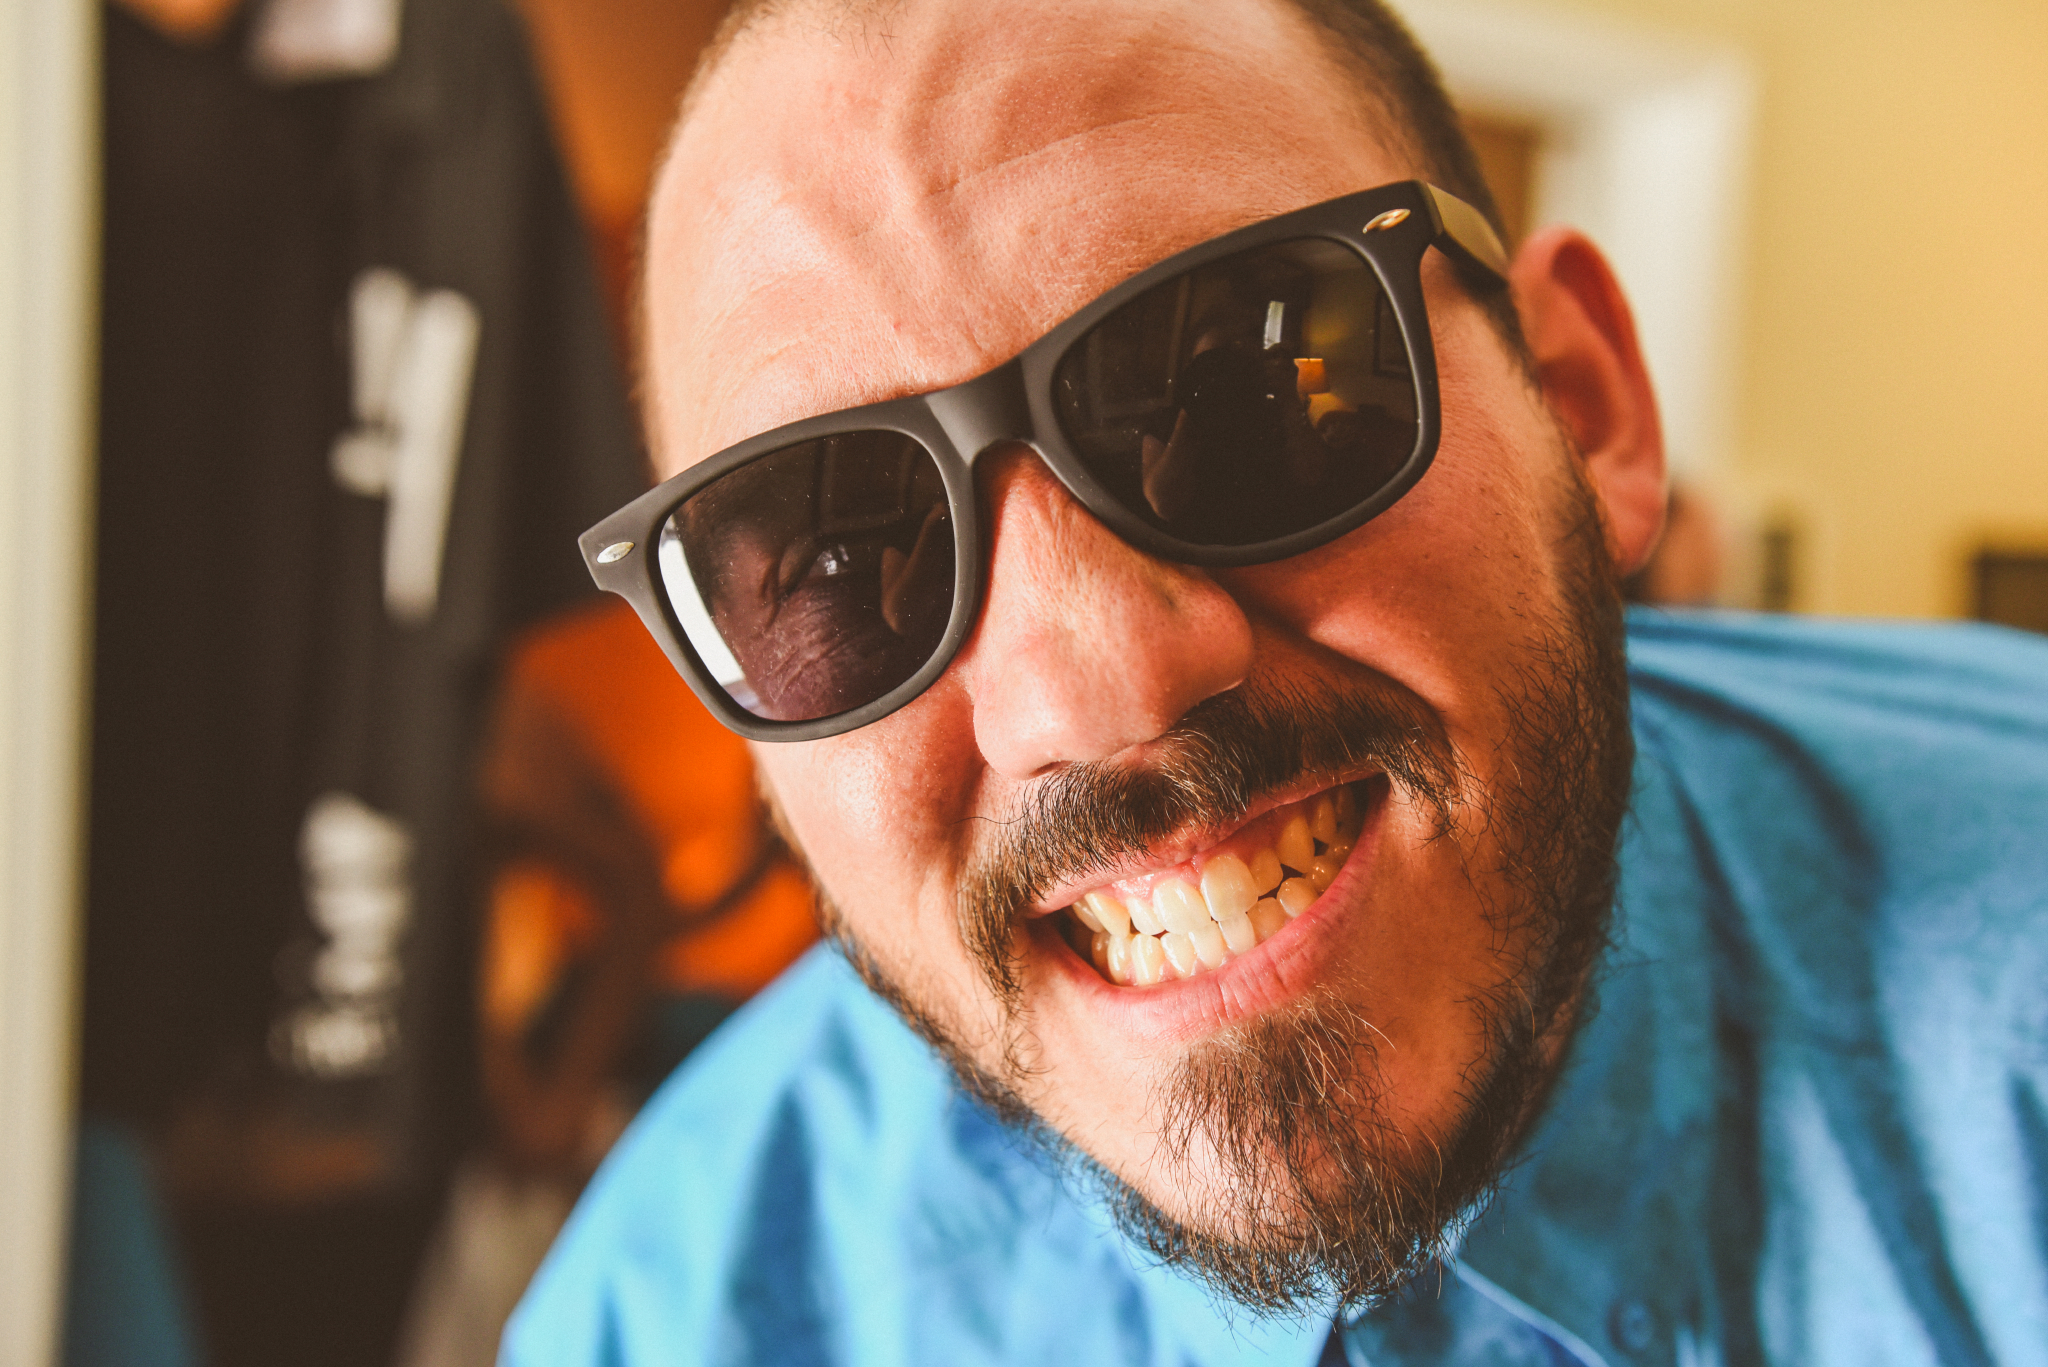 san diego wedding   photographer   man in turquoise shirt and shades smiling at camera